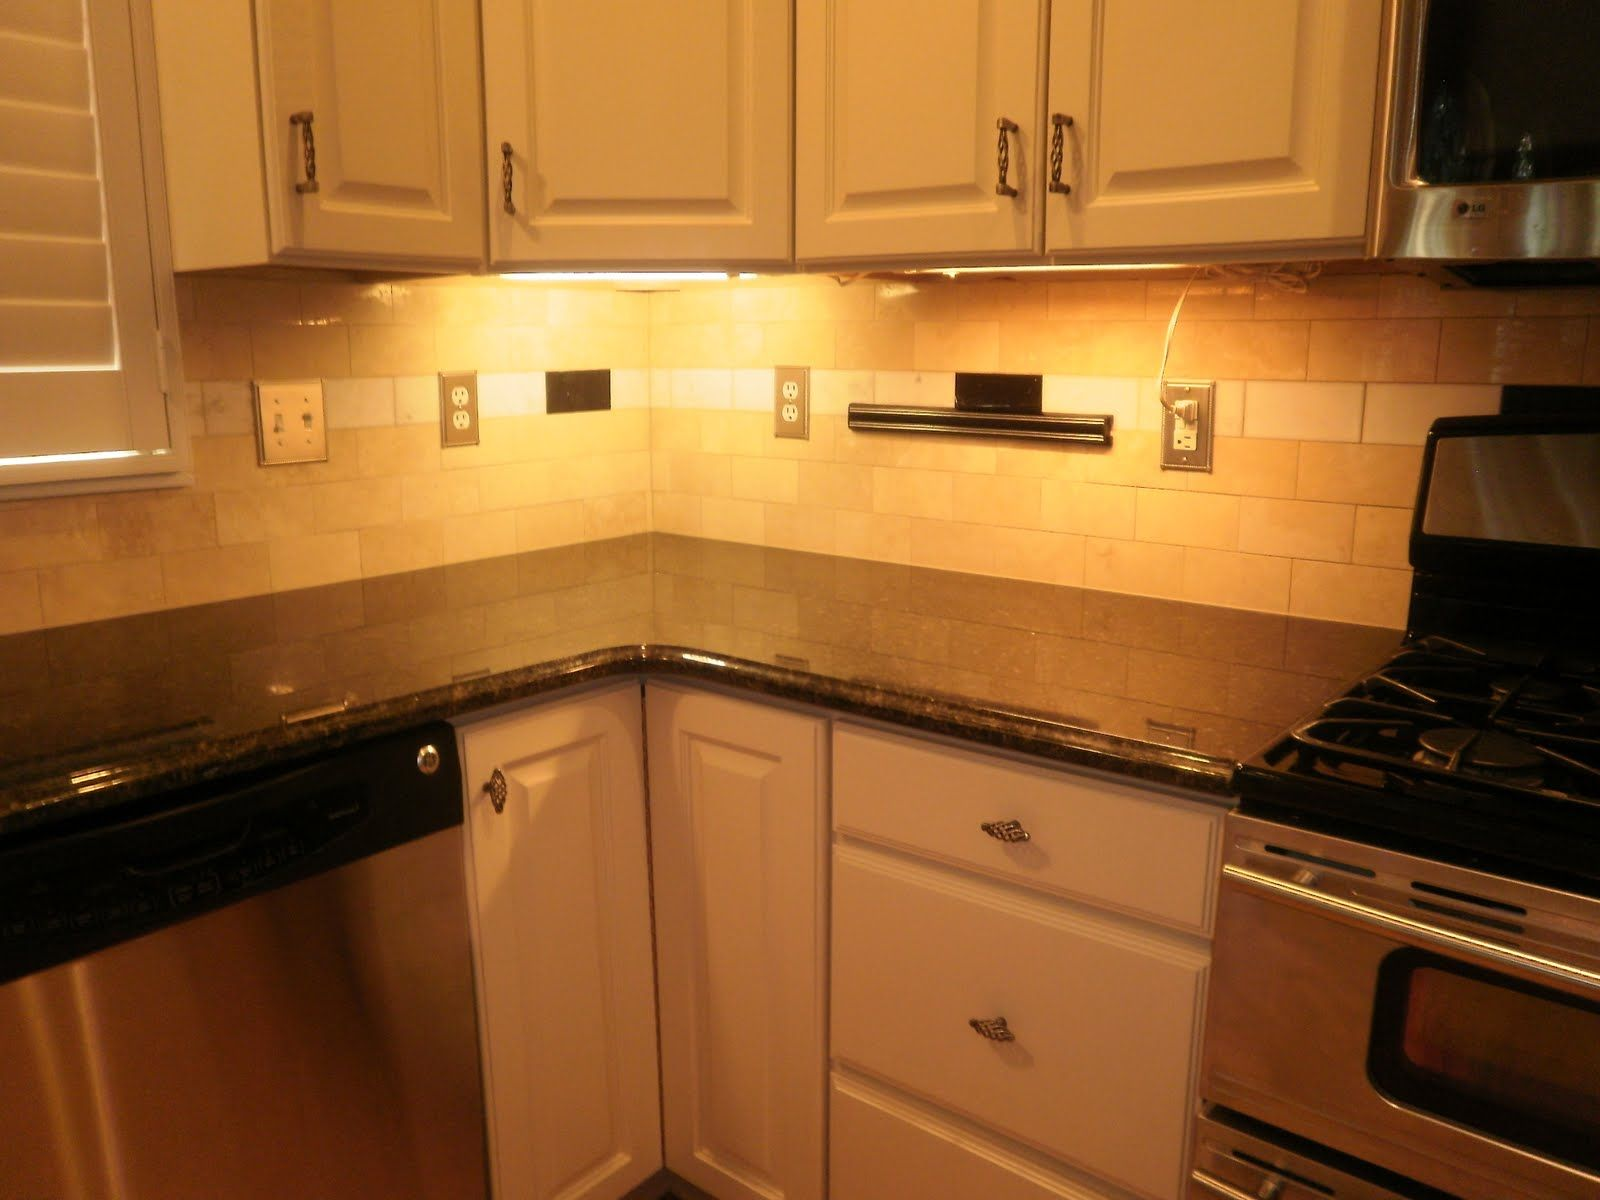 Backsplash With Uba Tuba Granite Countertop Uba Tuba Granite With White Cabinets Cardinale With